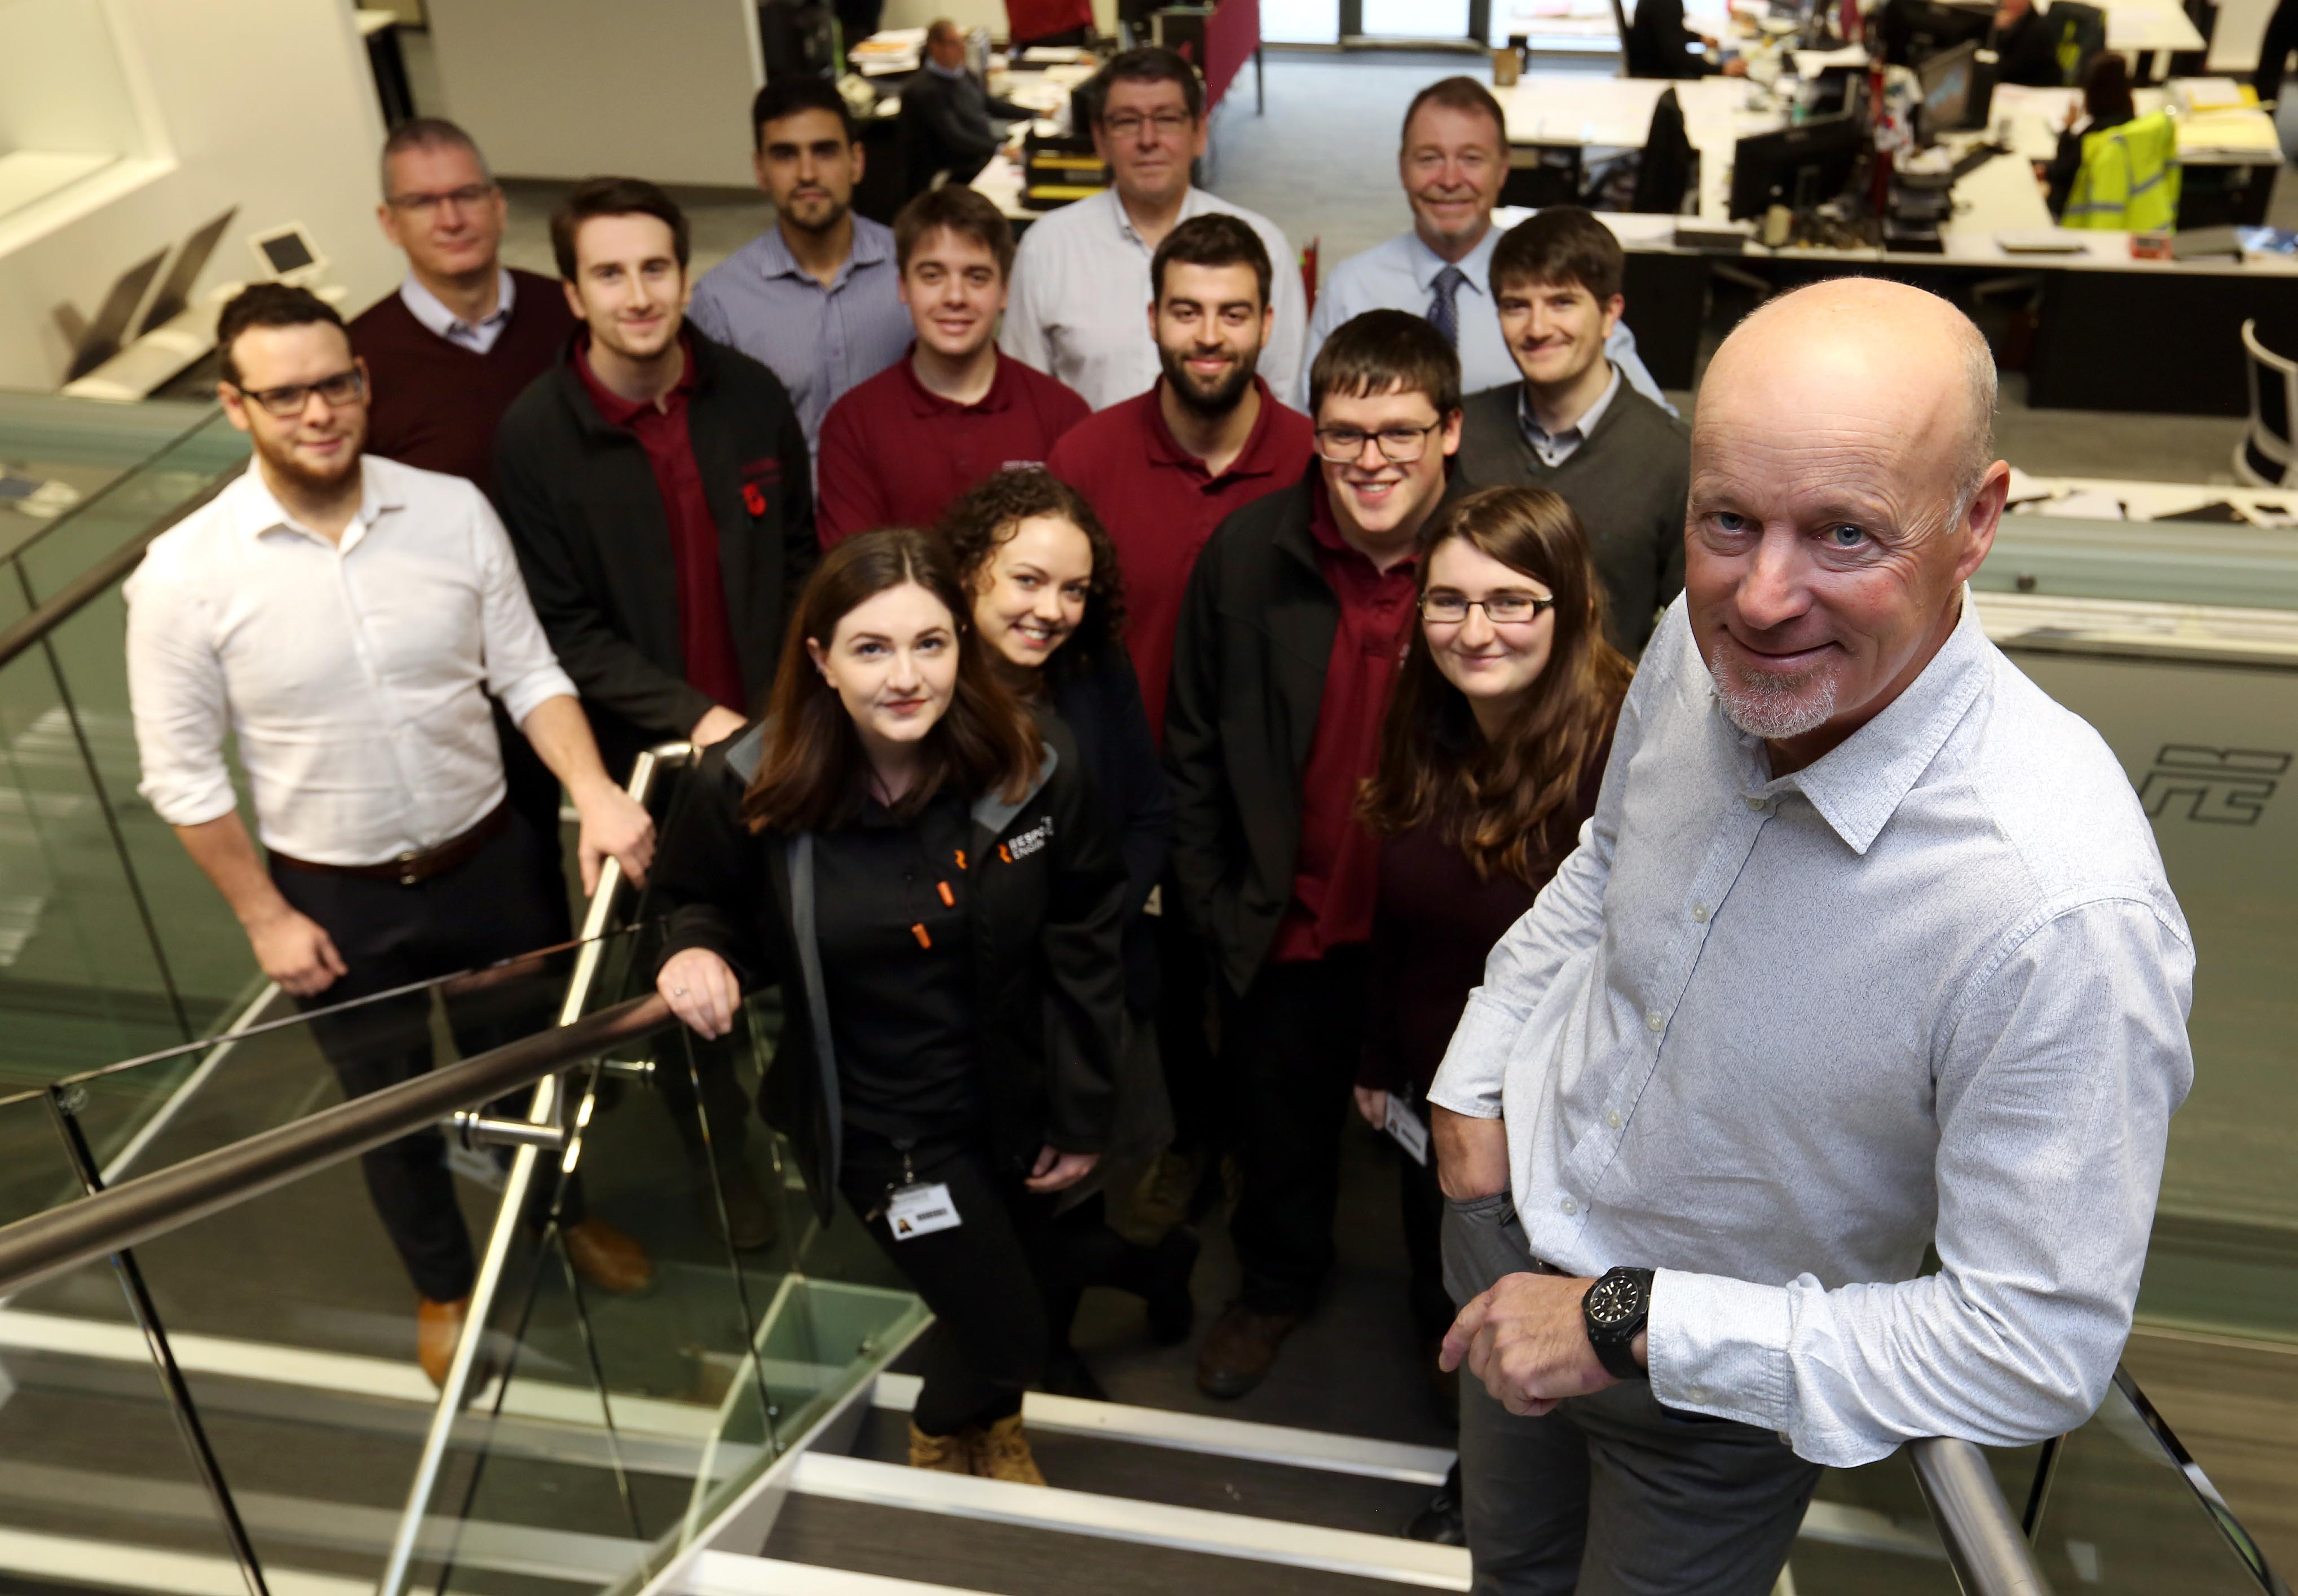 John Reece, chairman, Reece Group launches the Chairman's Innovation Challenge